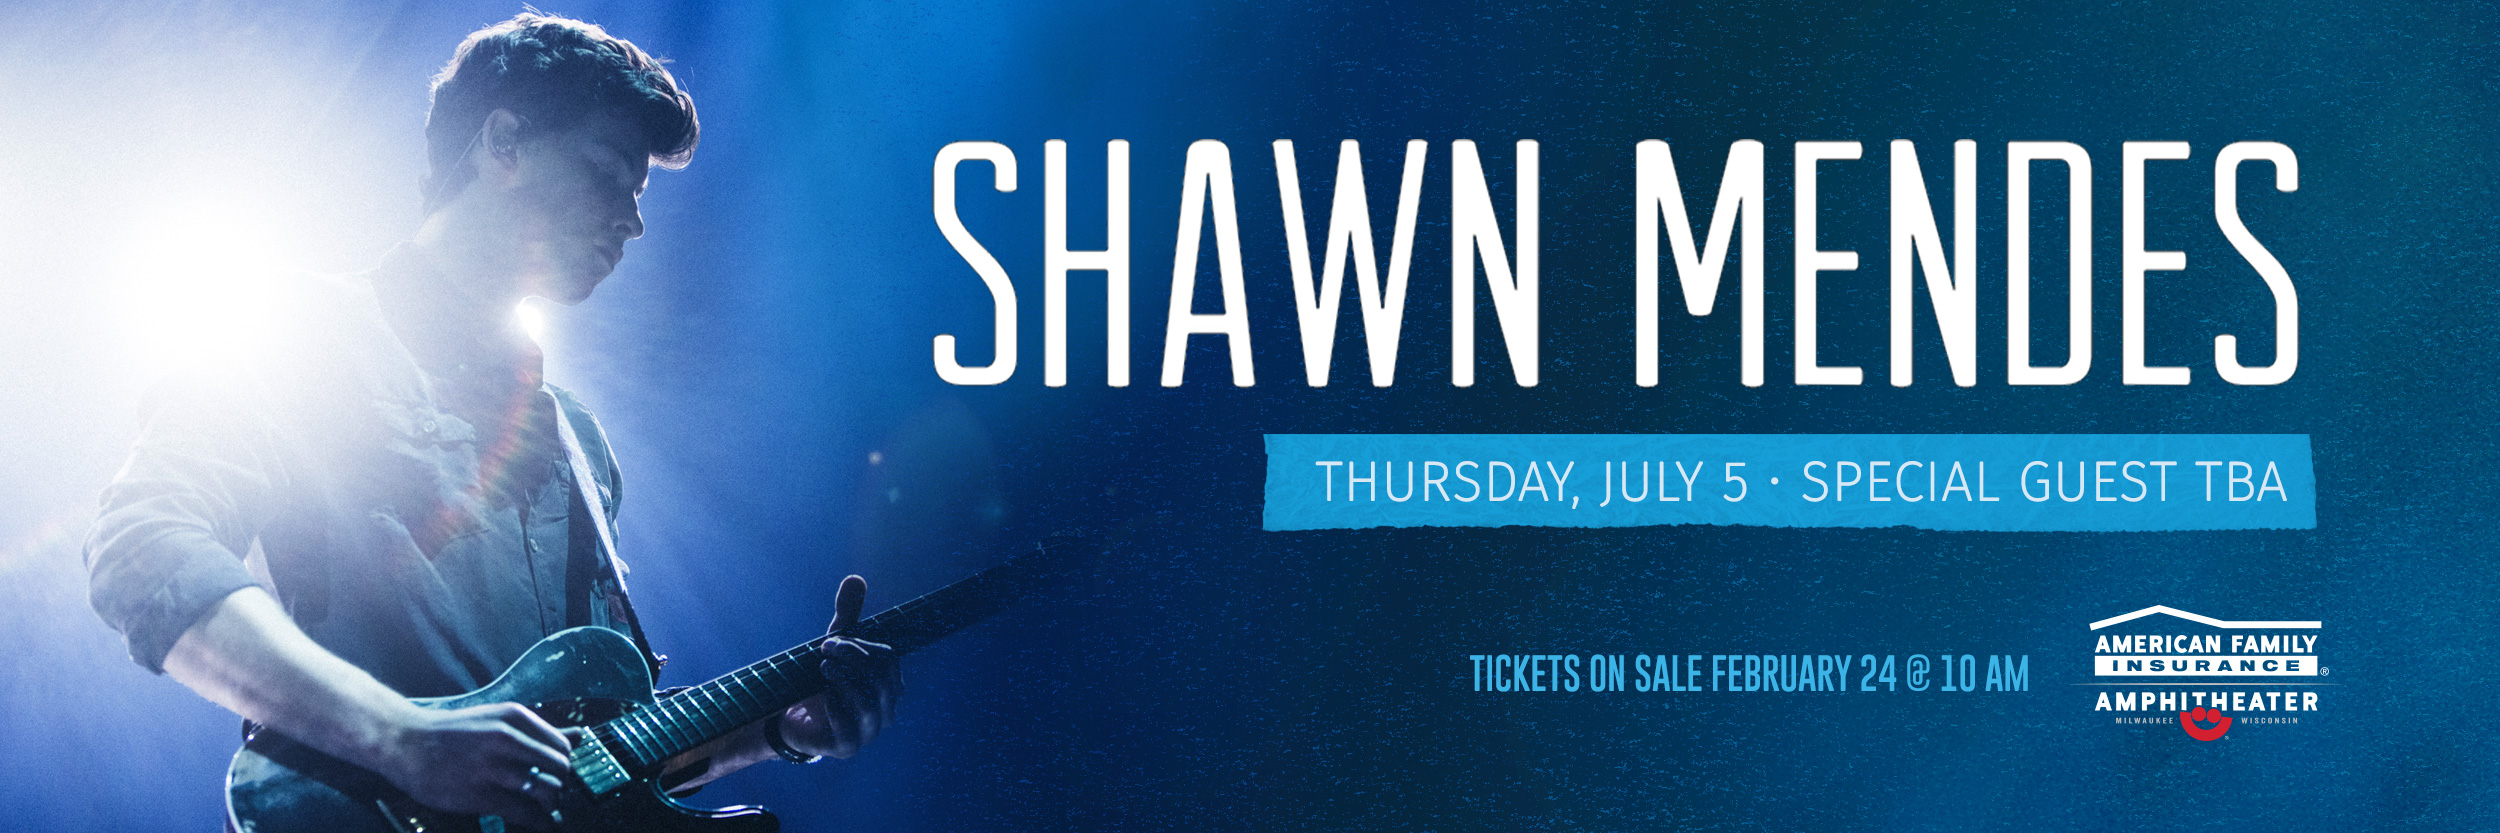 Beat the Box Office and win tickets to see Shawn Mendes!